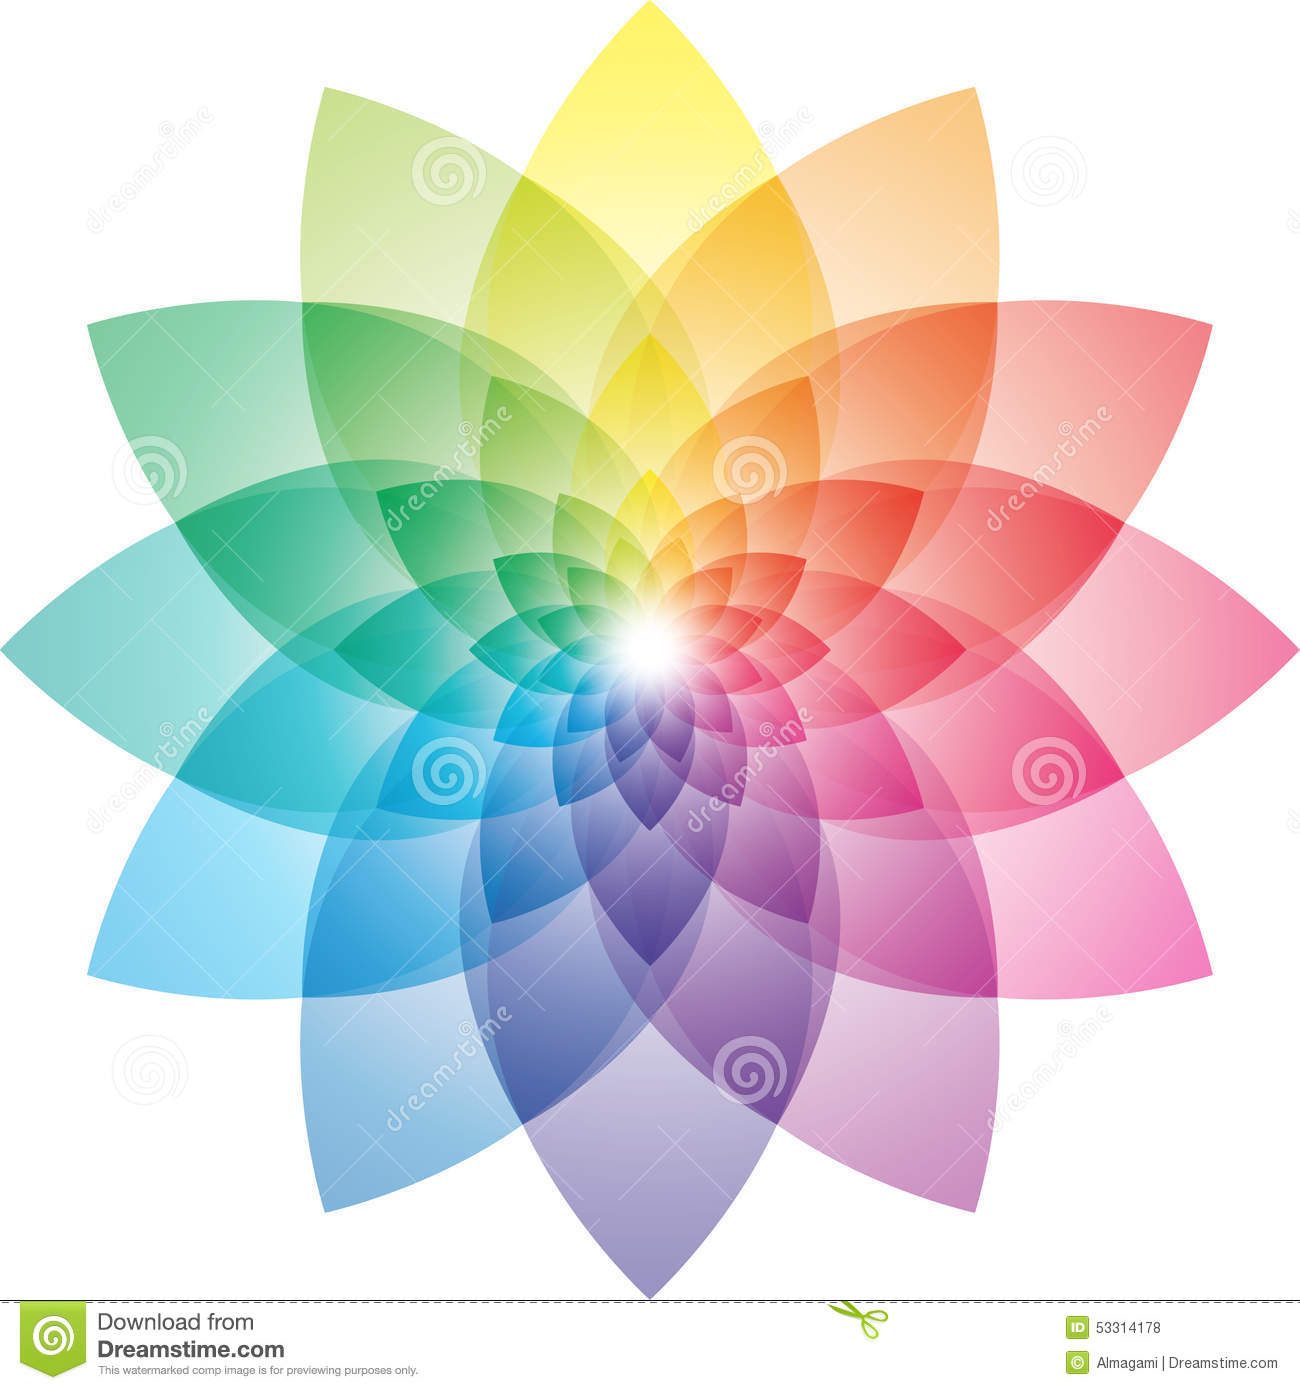 Lotus flower color wheel stock vector illustration of blue 53314178 lotus flower color wheel izmirmasajfo